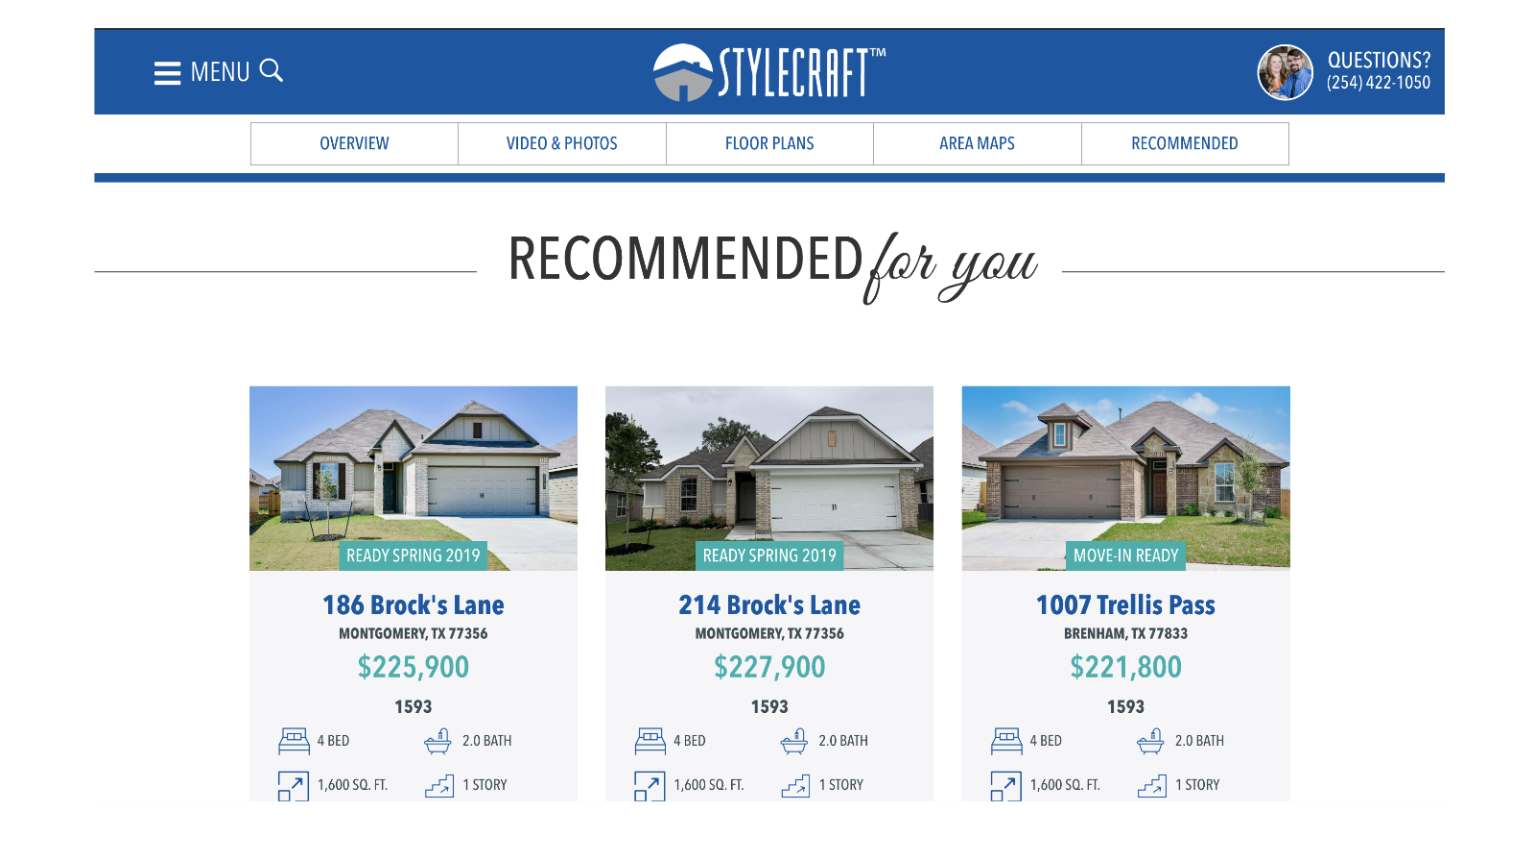 Stylecraft builder website makes personalized recommendations